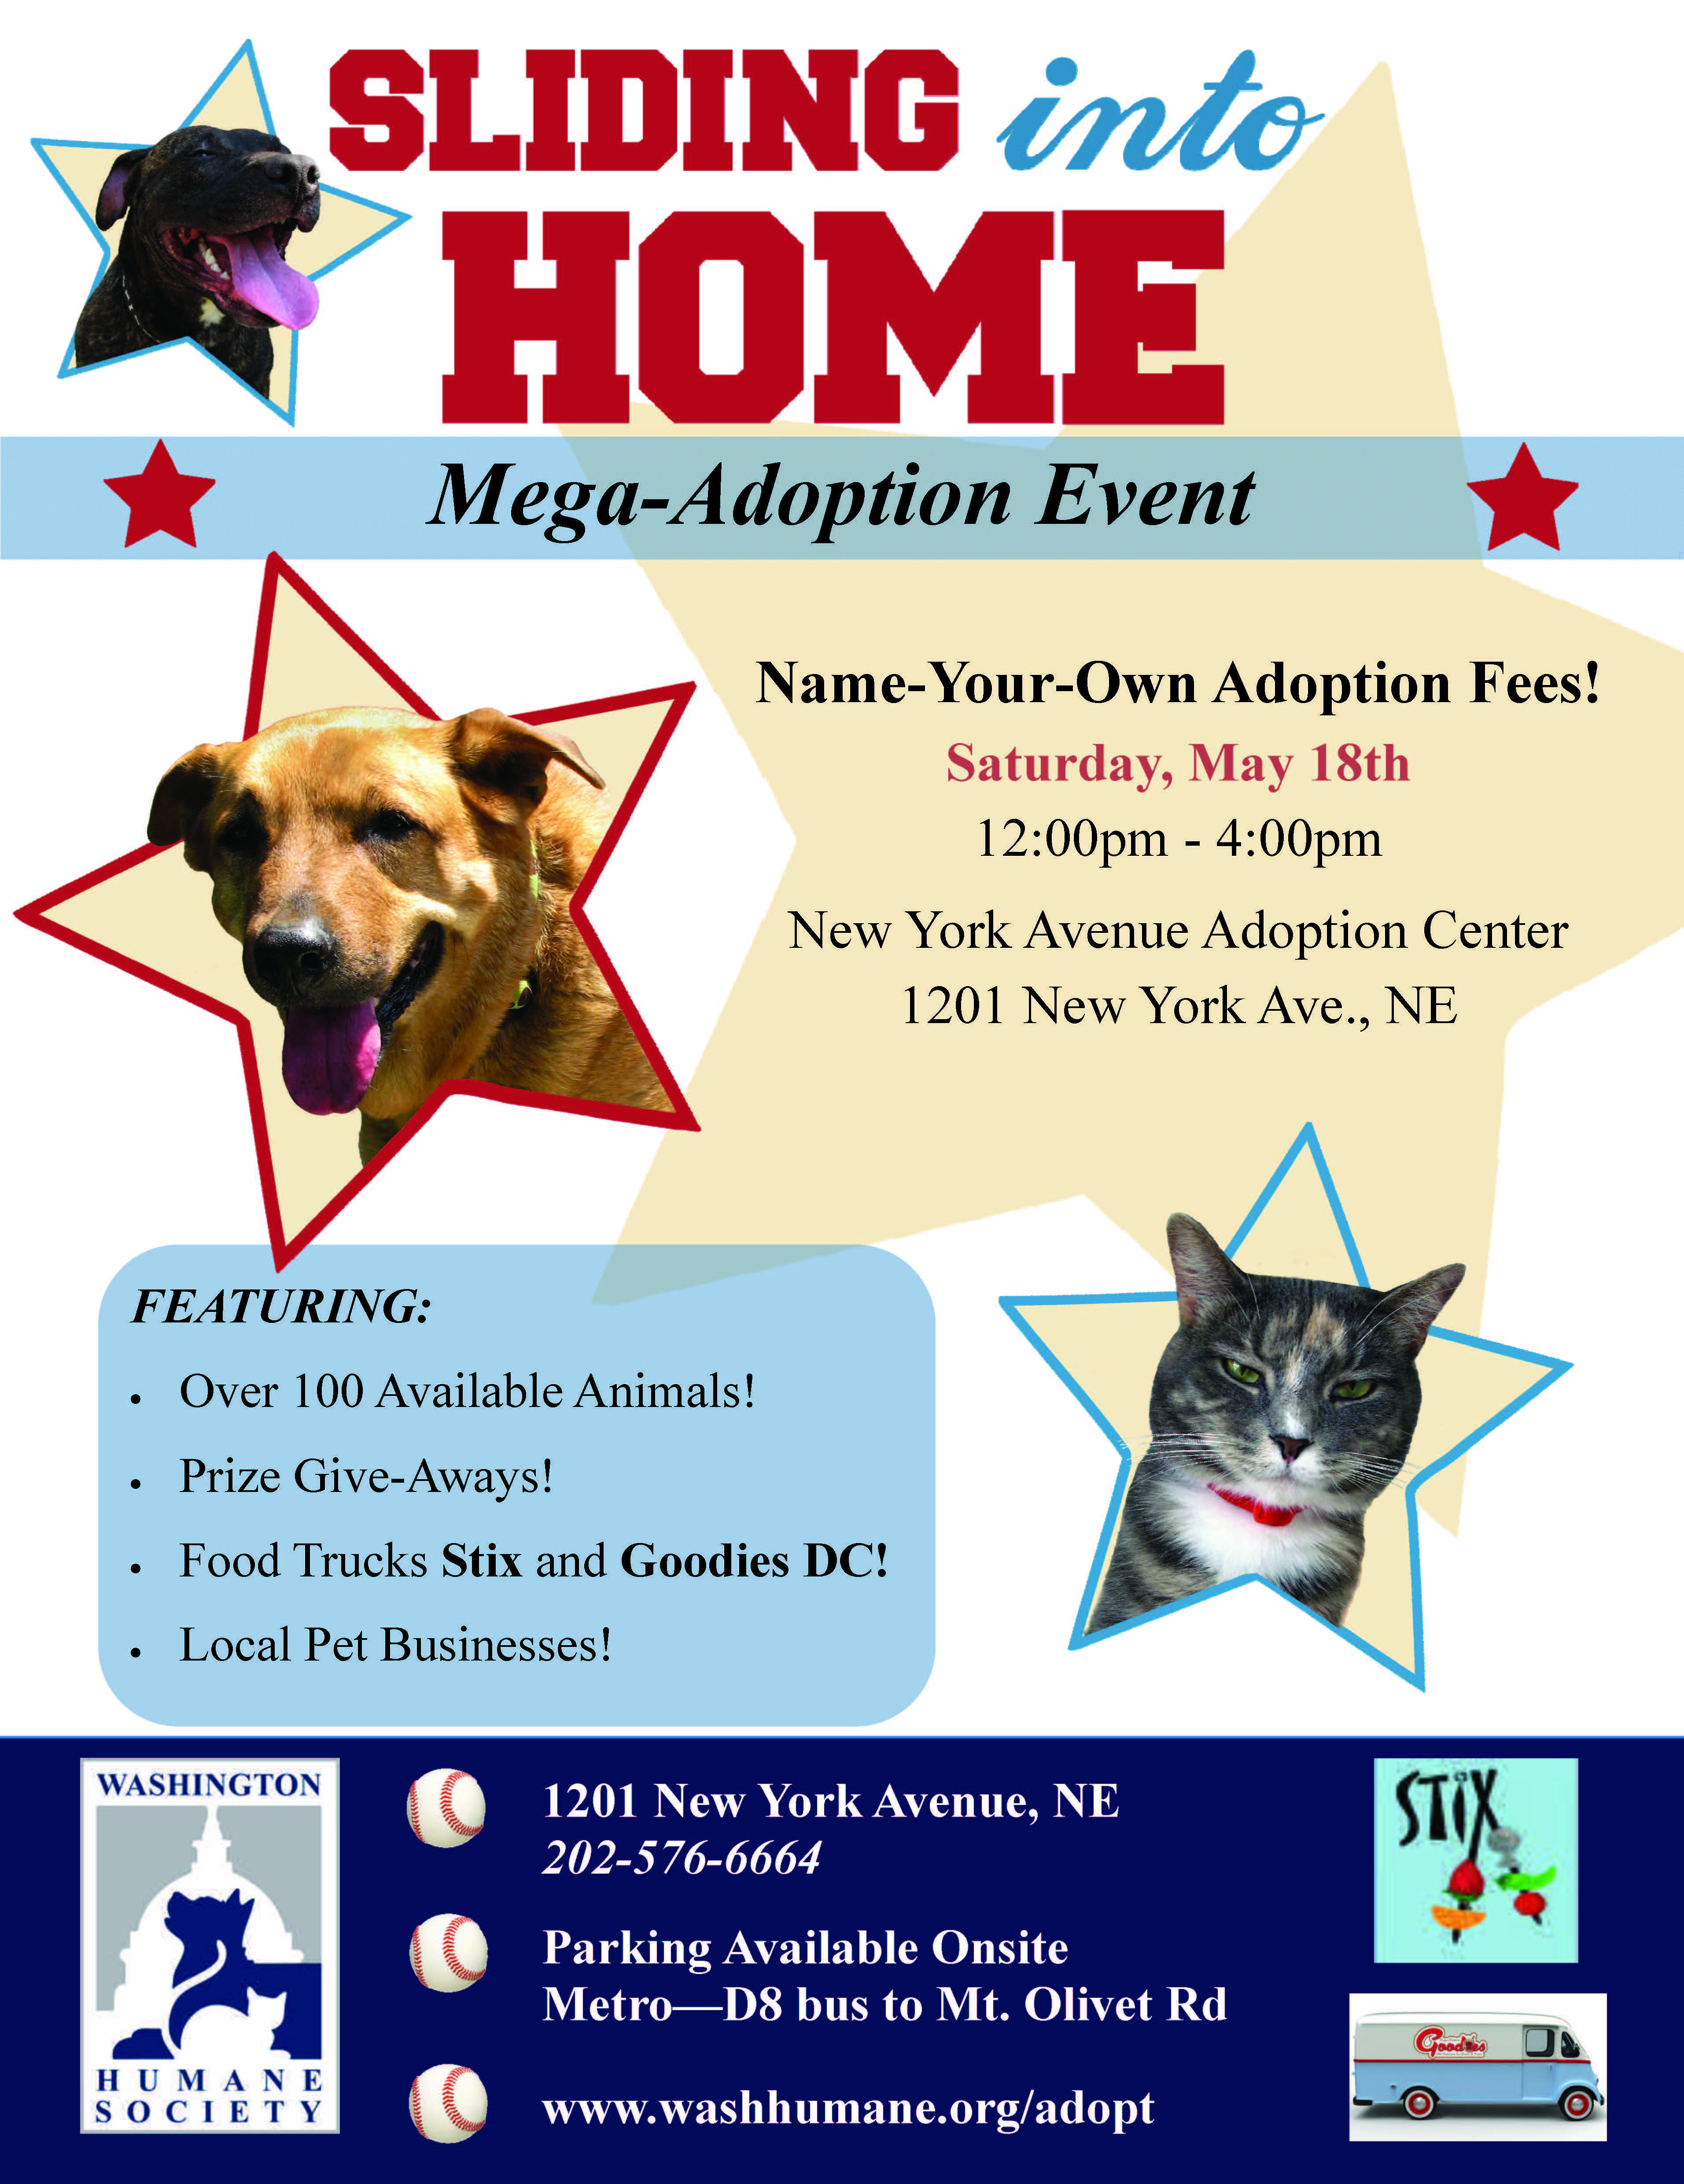 WHS will host a one day megaadoption event, Sliding Into